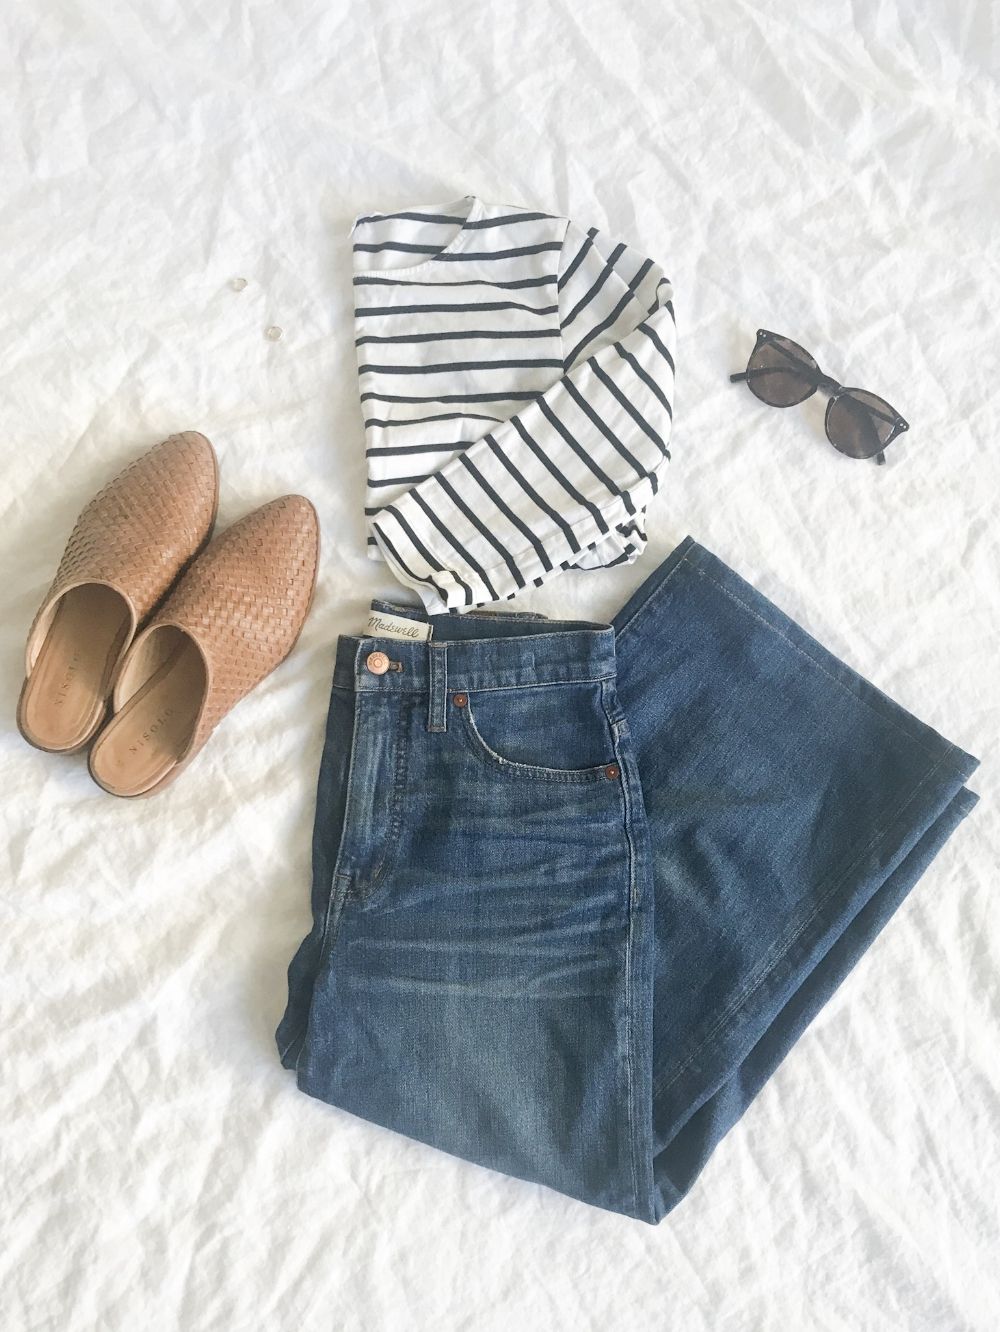 Madewell Wide Crop Jeans, Aritzia Top, Mejuri Earings,  Nisolo Ama Mules , Bailey Nelson Sunglasses